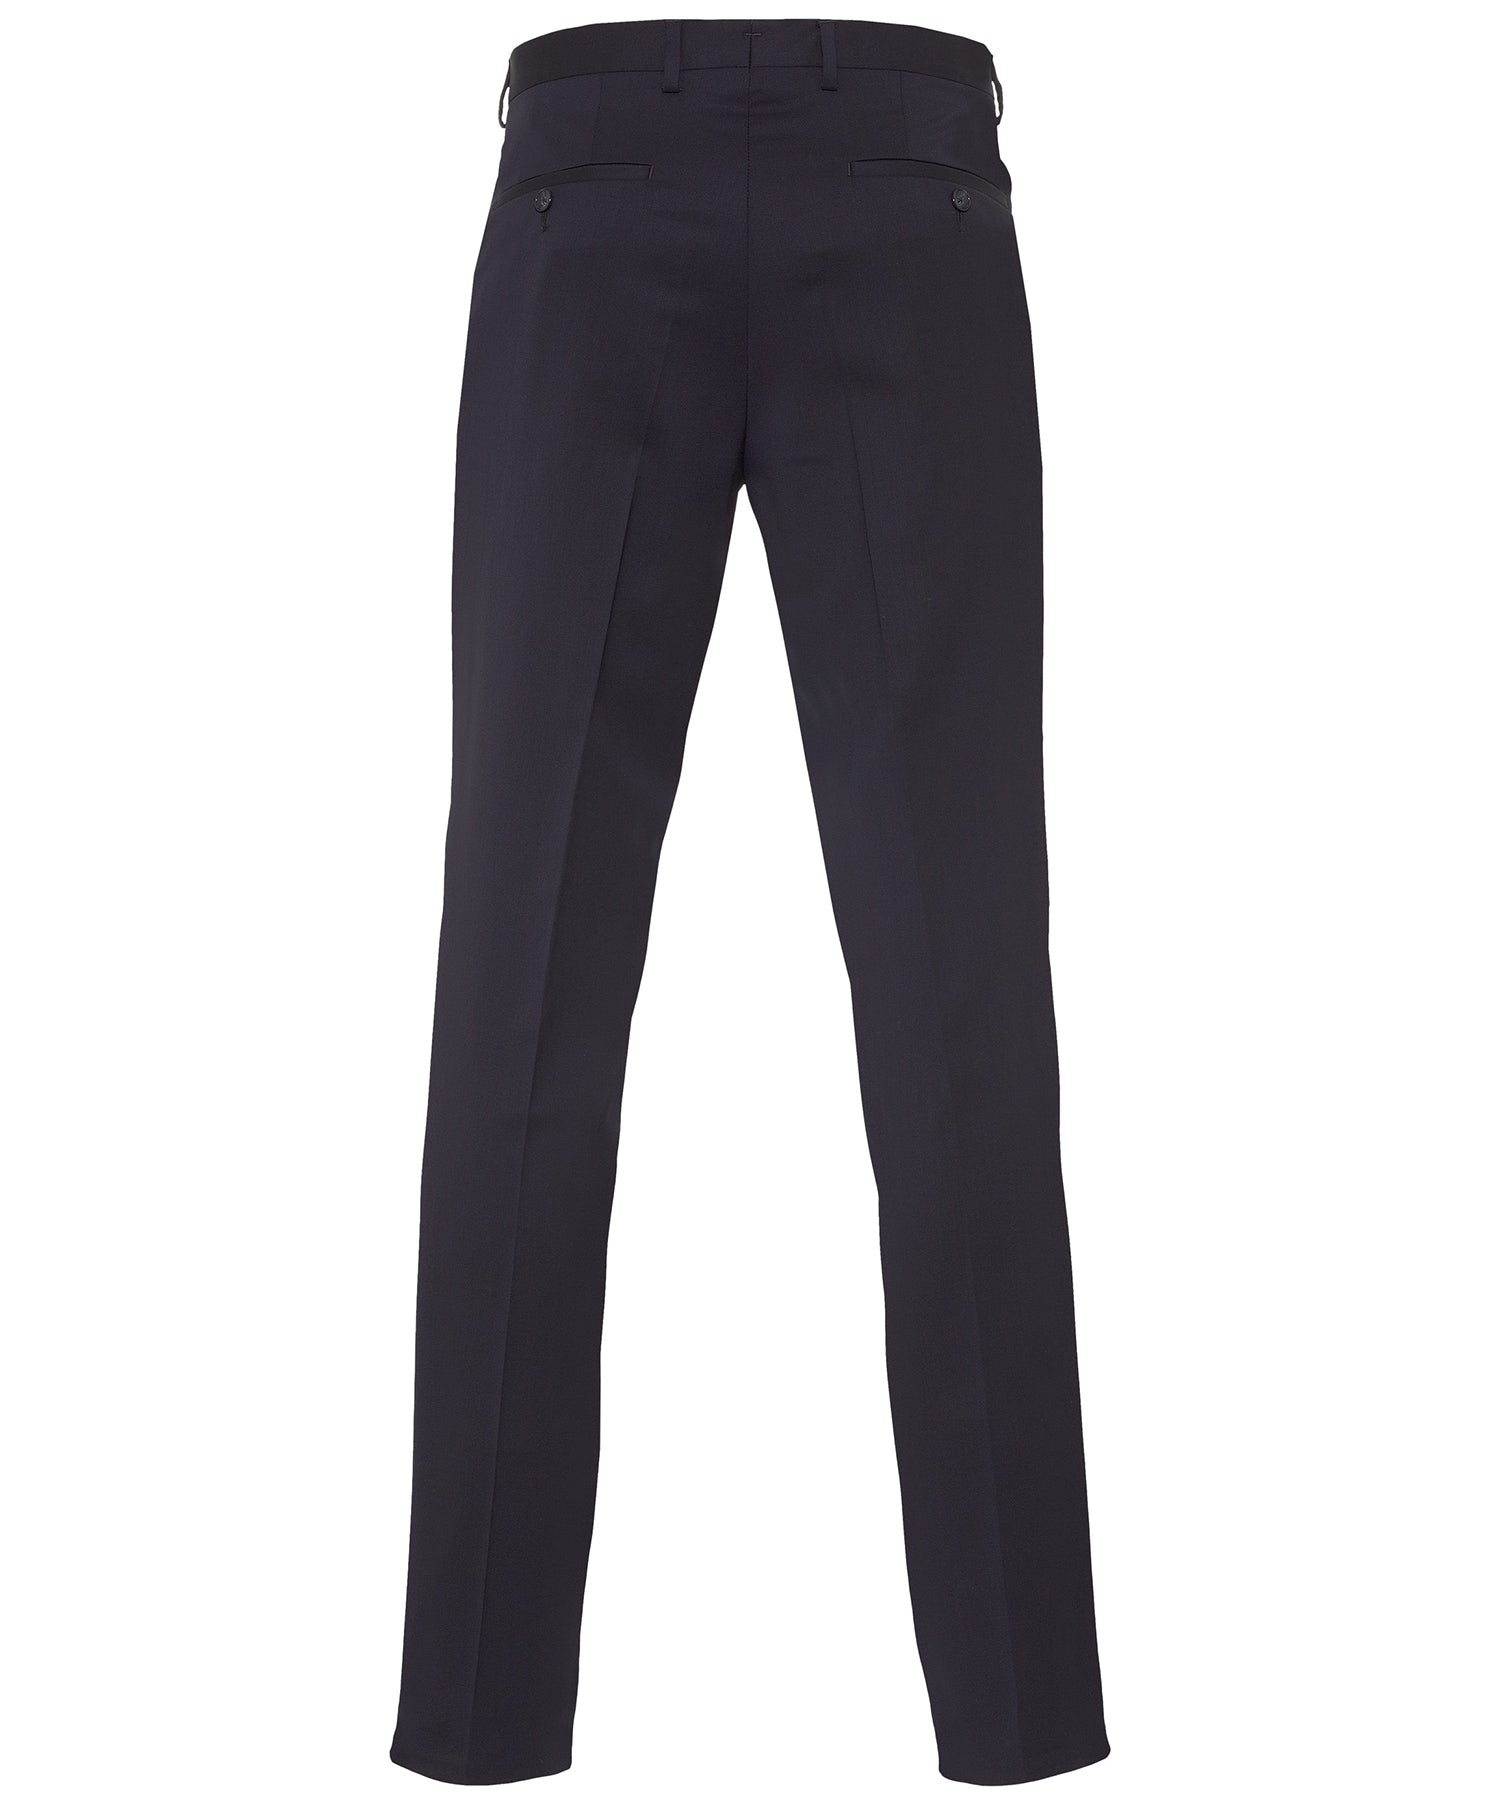 Buck Navy Solid S130's Fine Serge Dress Pant